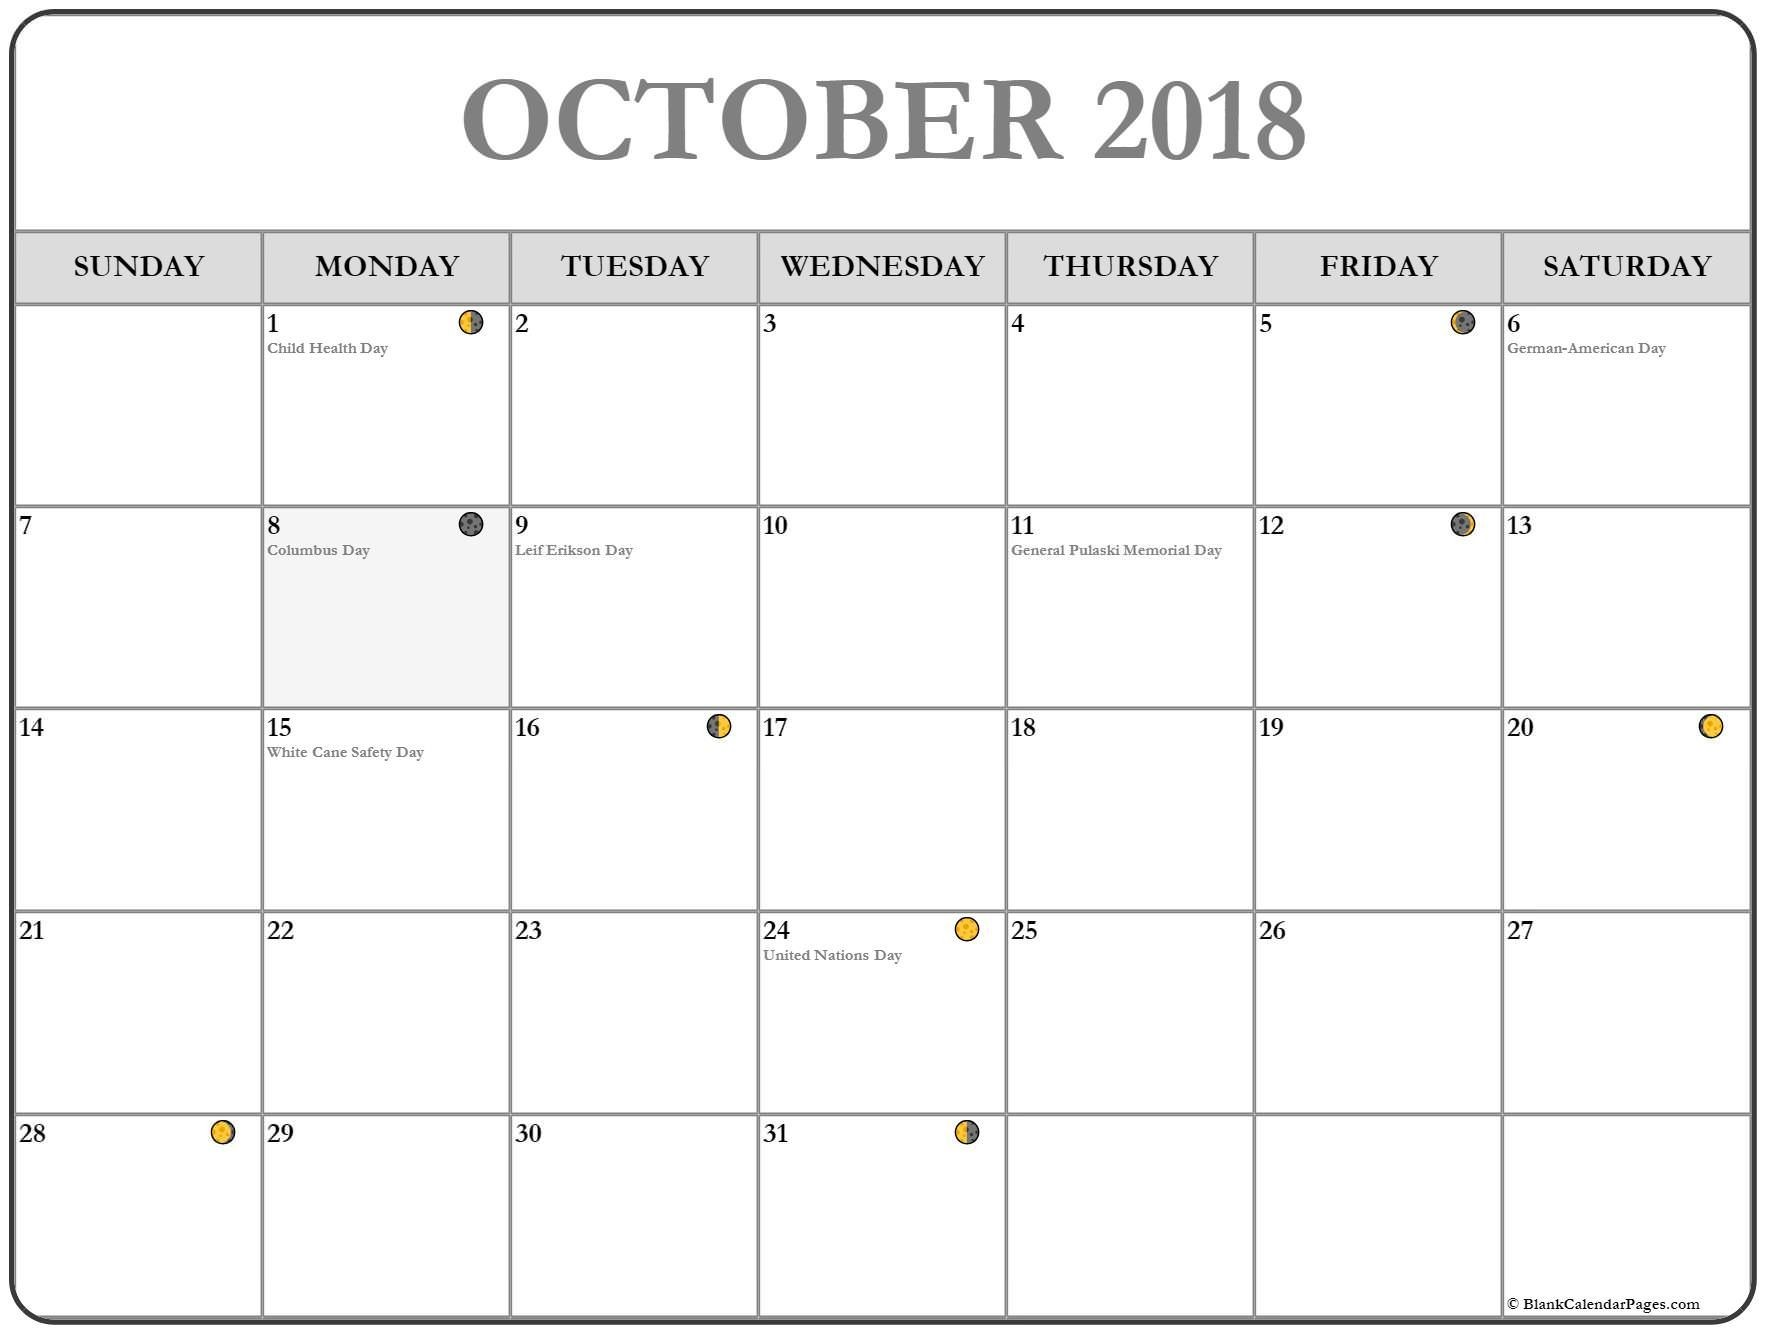 Calendario Noviembre 2017 Imprimir Gratis Más Recientes Calendar 2018 October Moon Phase October Calendar Printable Of Calendario Noviembre 2017 Imprimir Gratis Más Recientemente Liberado October 2016 Calendar Printable Template 8 Templates